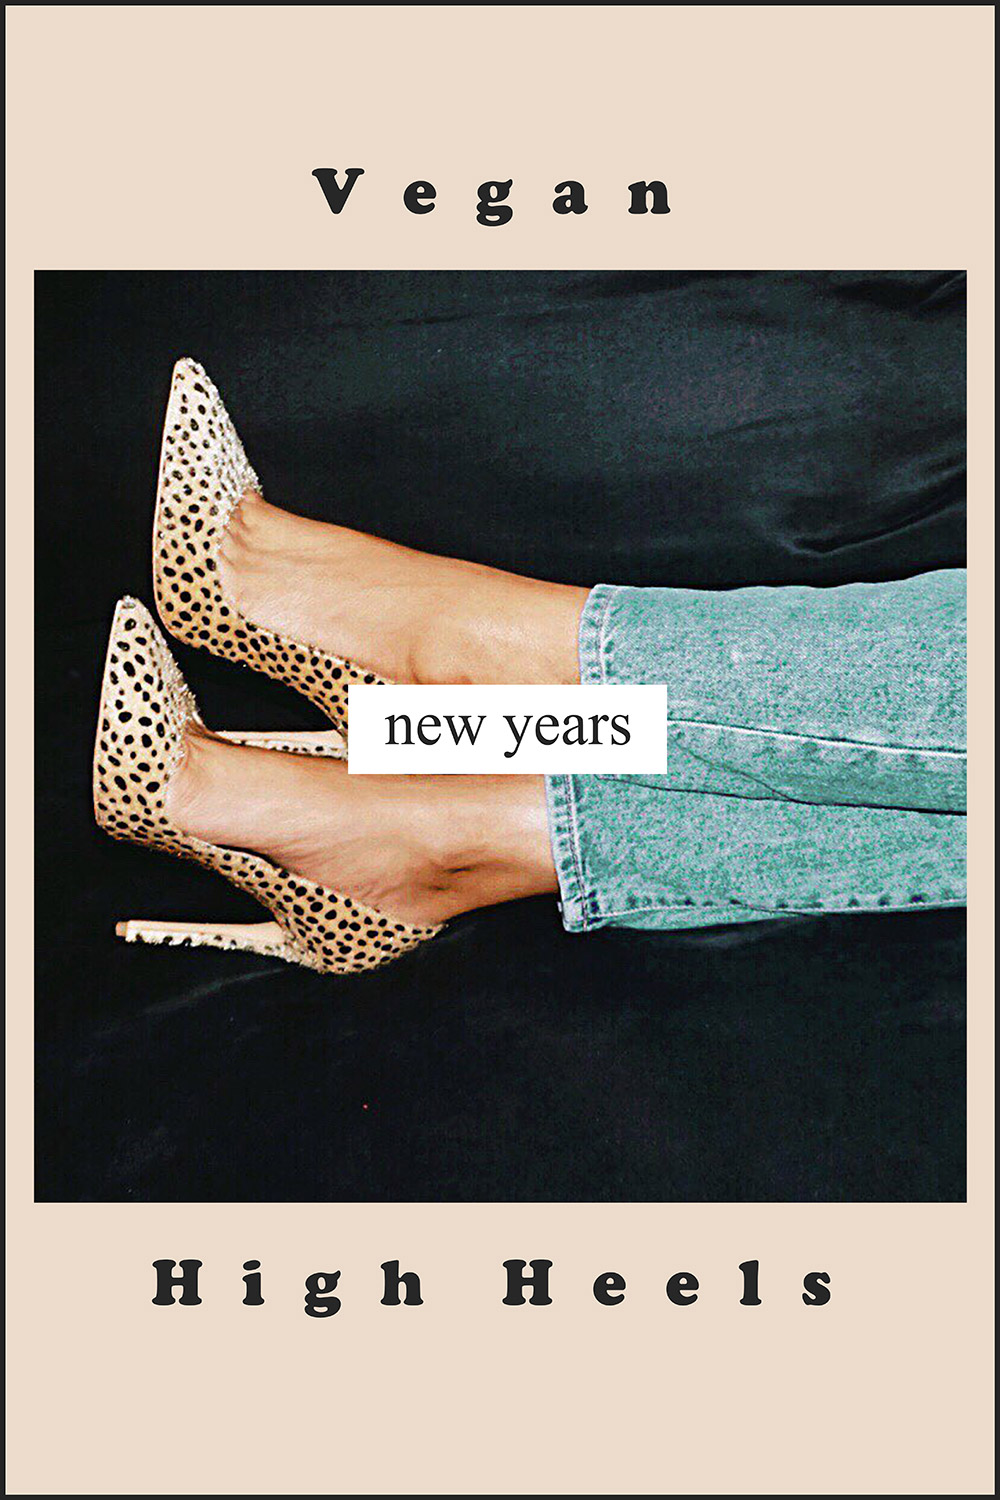 BEST Vegan High Heels for this New YearS PARTY - Walk into the New Years with style